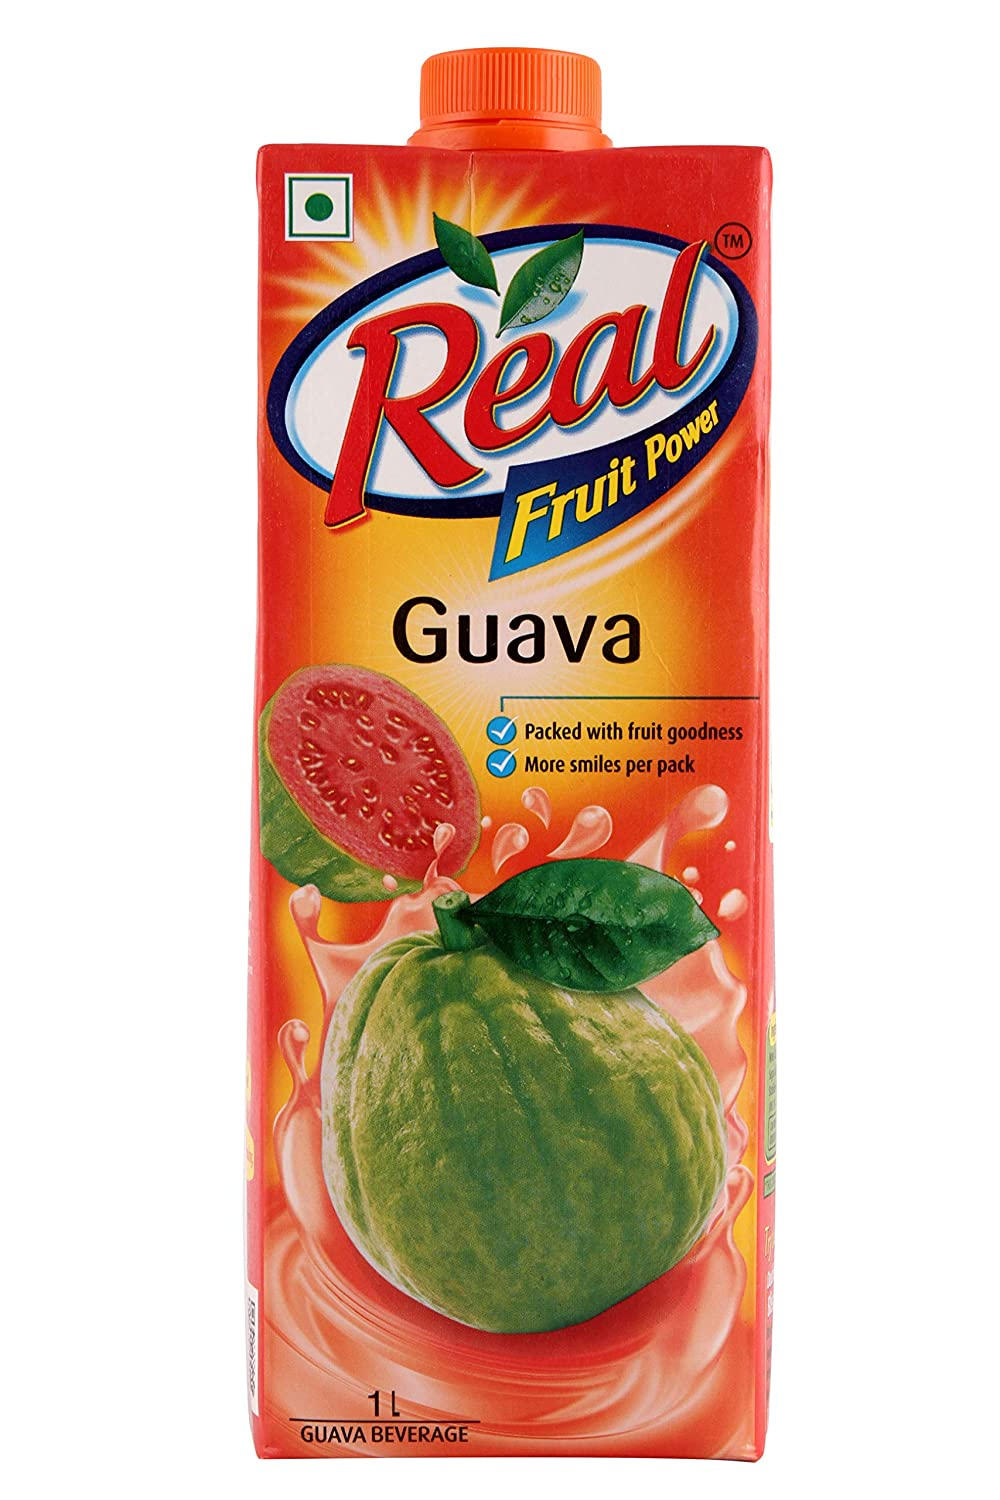 Real Fruit Power Guava, 1L